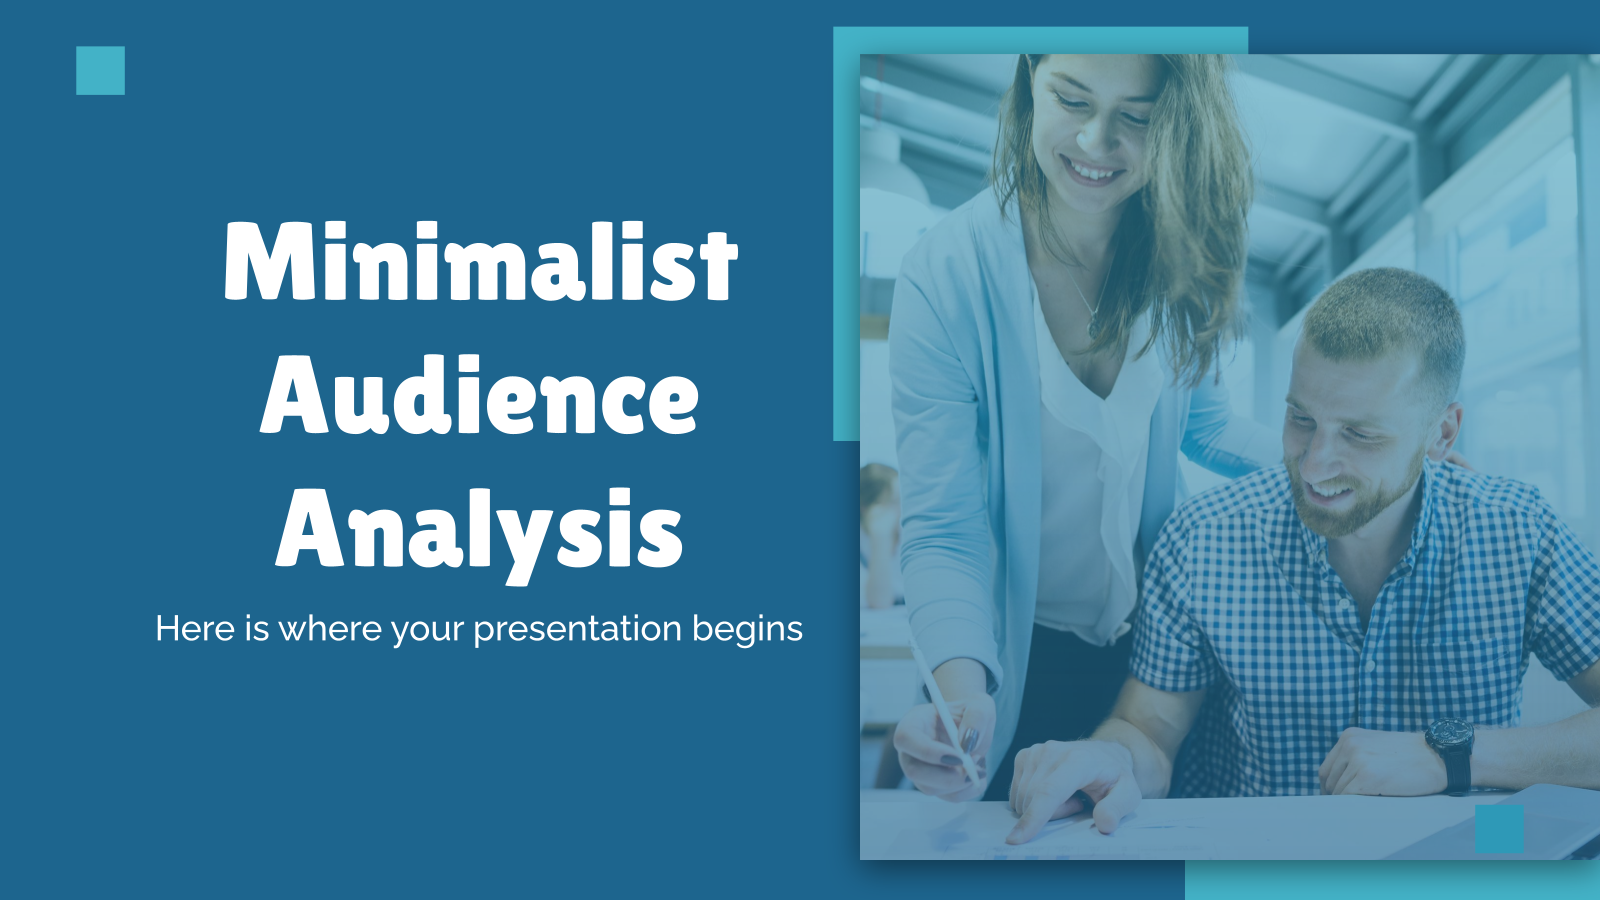 Minimalist Audience Analysis presentation template